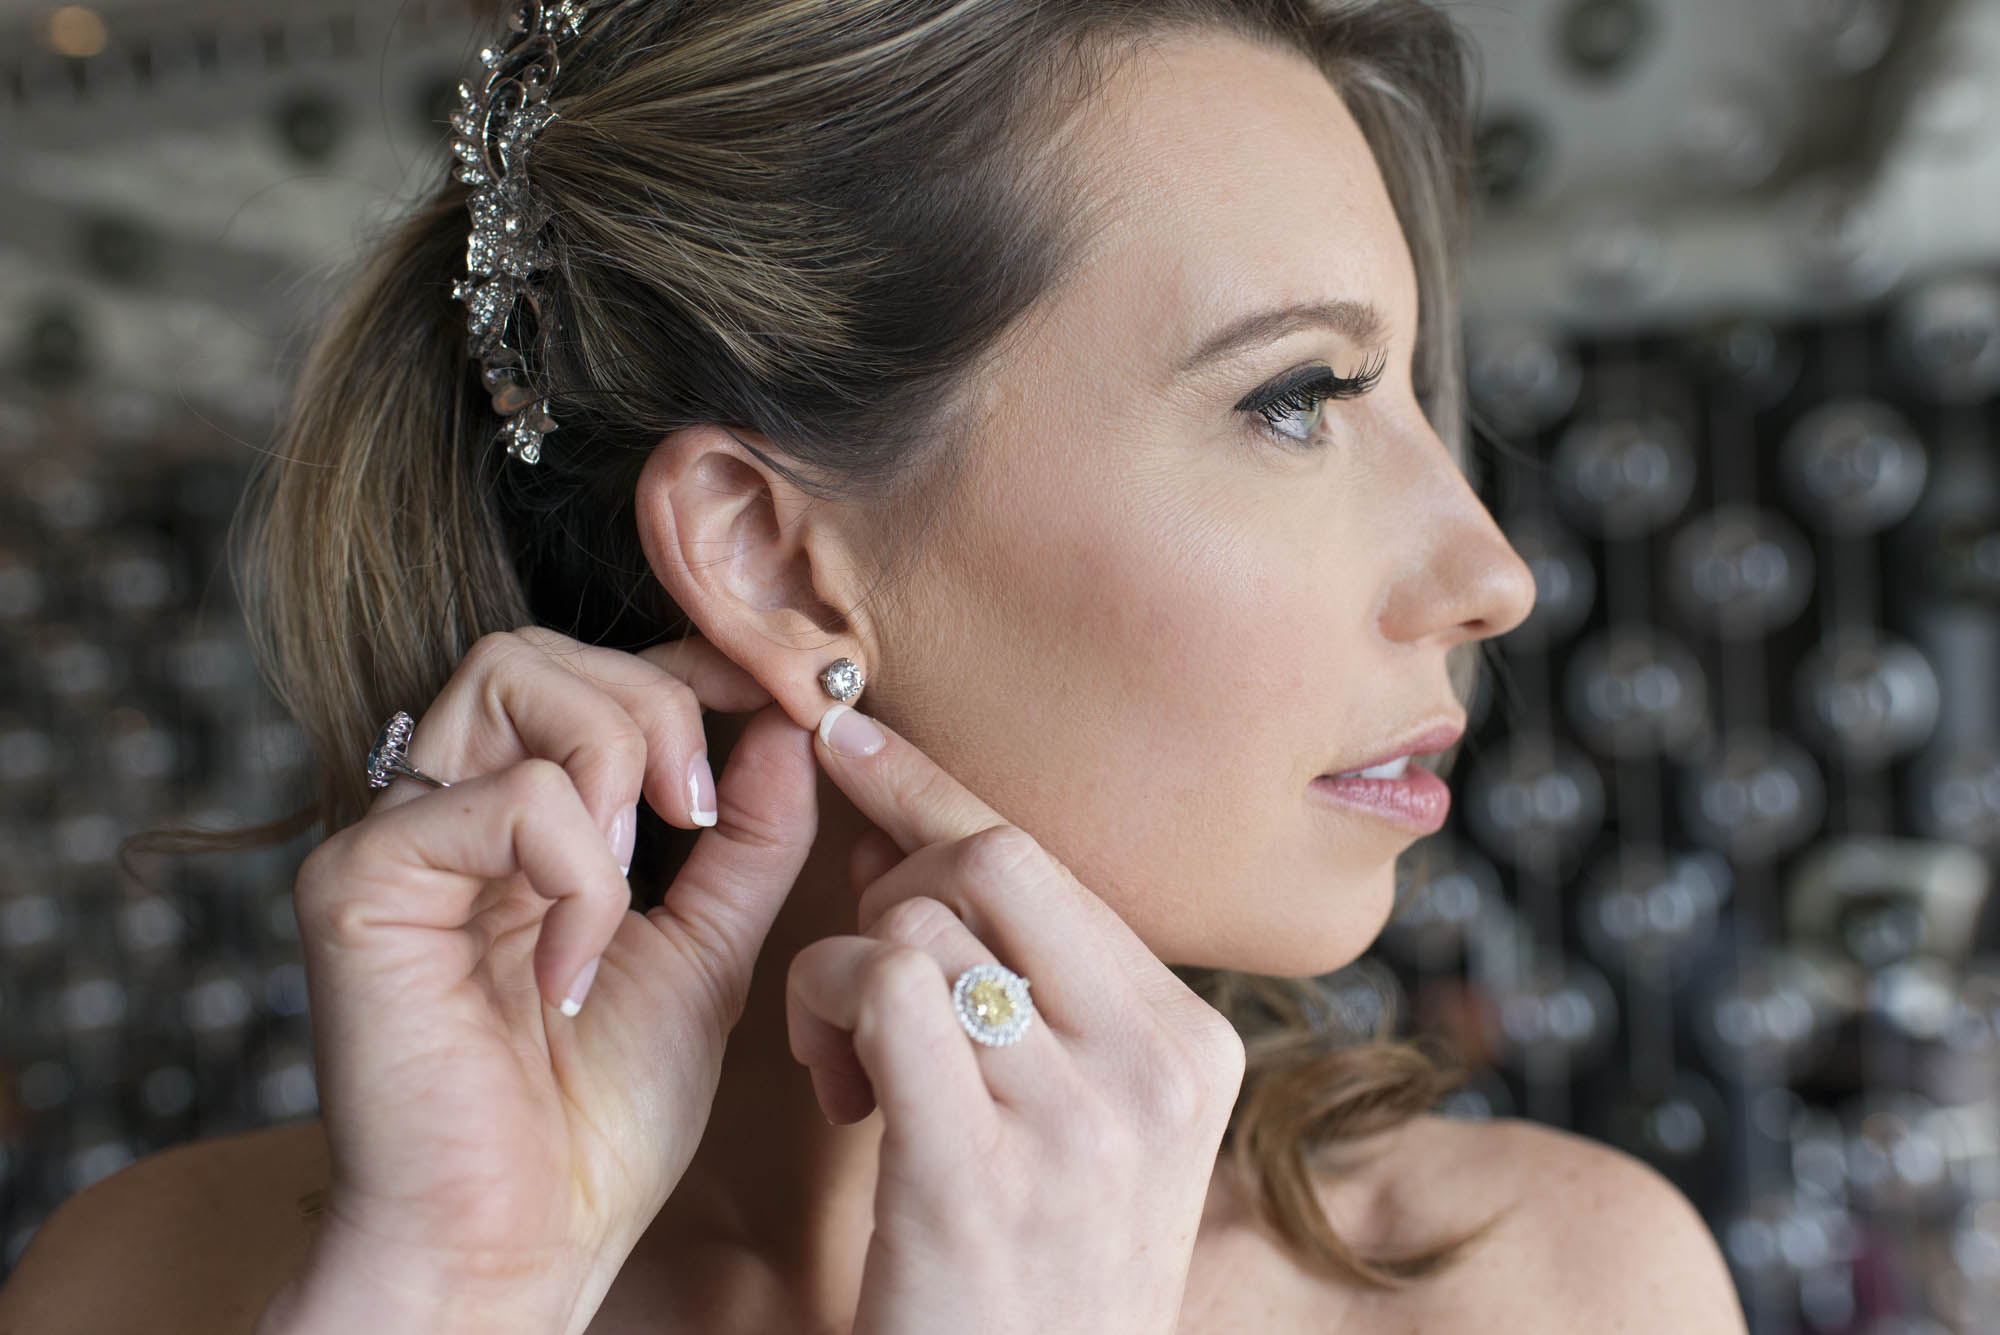 Earrings and Ring by T Bird Jewelers.   CREATIVE PARTNERS:    PHOTOGRAPHY •  AltF Photography  ,PLANNING •  Andrea Eppolito Events  ,FLORAL AND DECOR DESIGN •  Destinations by Design  ,VENUE AND CATERING •  Mandarin Oriental, Las Vegas  ,STATIONERY DESIGN •  Paper and Home  ,  BRIDE'S GOWN • Vera Wang ,SHOES • Jimmy Choo ,  GROOM'S FORMAL WEAR •  Vera Wang  ,  ENGAGEMENT RING • Delage Jewelers ,  WEDDING BANDS • T-Birds Jewels   ,  CAKE DESIGN • Mandarin Oriental Las Vegas , DRAPING;  DANCE FLOOR DESIGN AND PRODUCTION • Destination by Design ,  LIVE EVENT ARTIST • Sam Day ,ENTERTAINMENT  • Lucky Devils Band ,CINEMATOGRAPHY • Something New